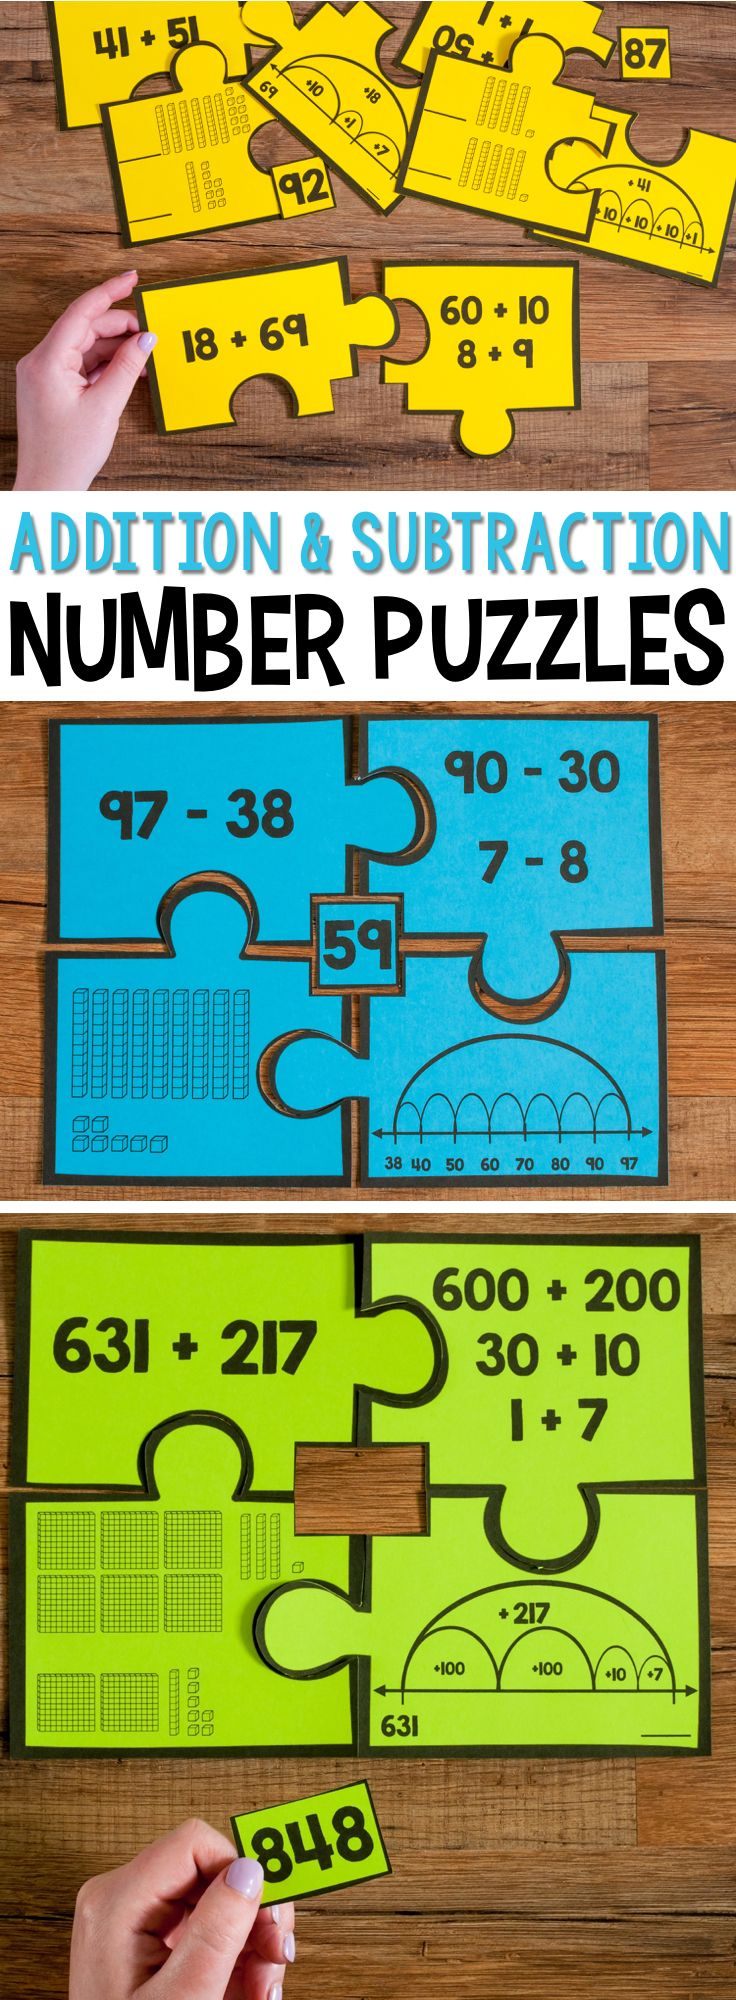 241 best Math: Multi-digit Addition & Subtraction images on ...